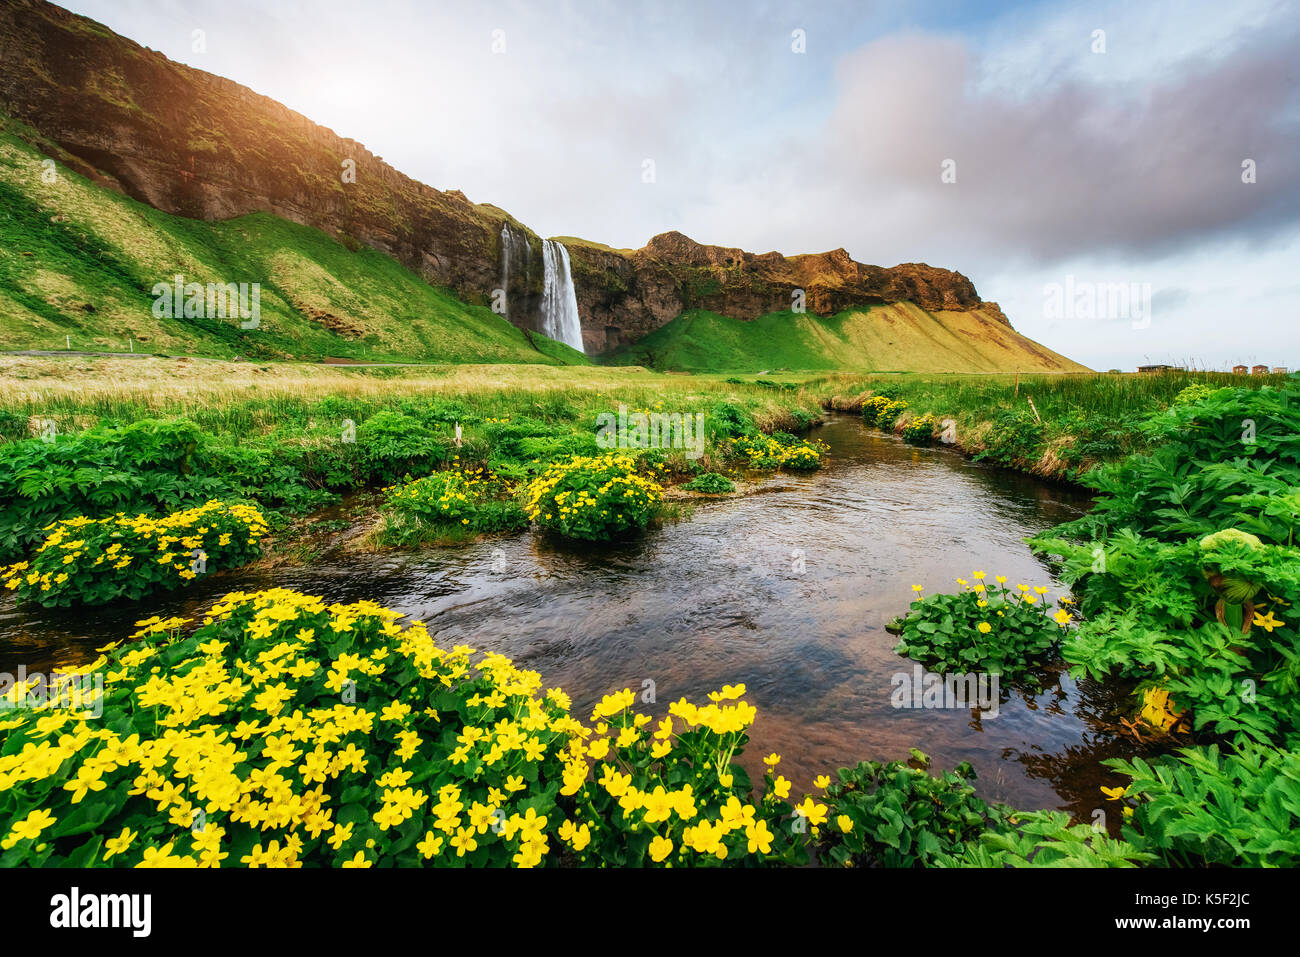 Seljalandfoss waterfall at sunset. Bridge over the river. Fantastic nature. Iceland - Stock Image